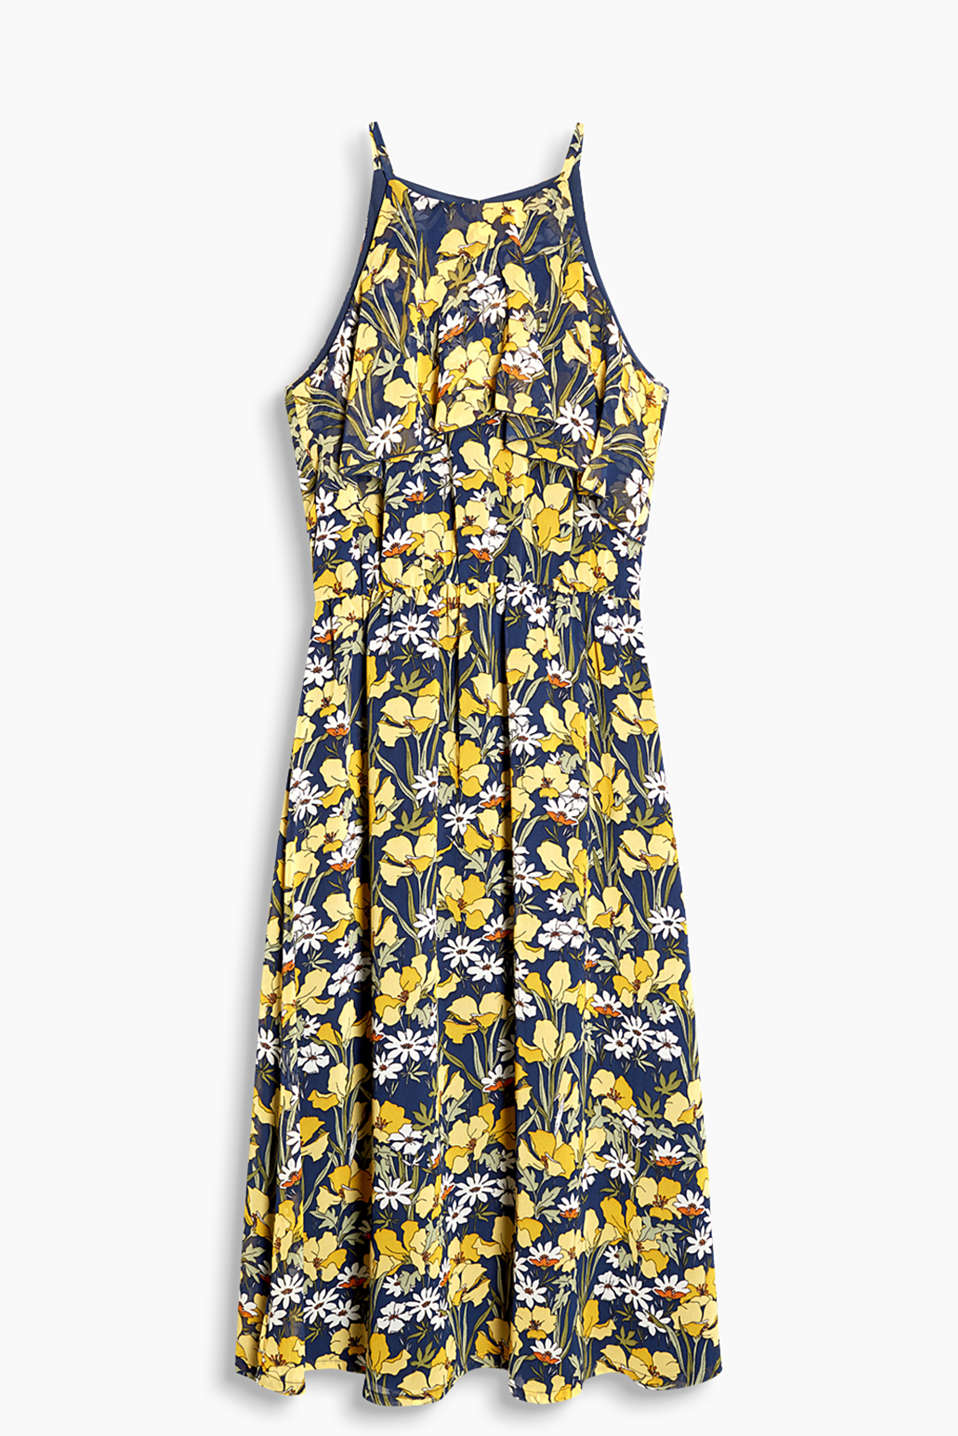 Midi dress in delicate chiffon with a bold floral print and a pretty flounce